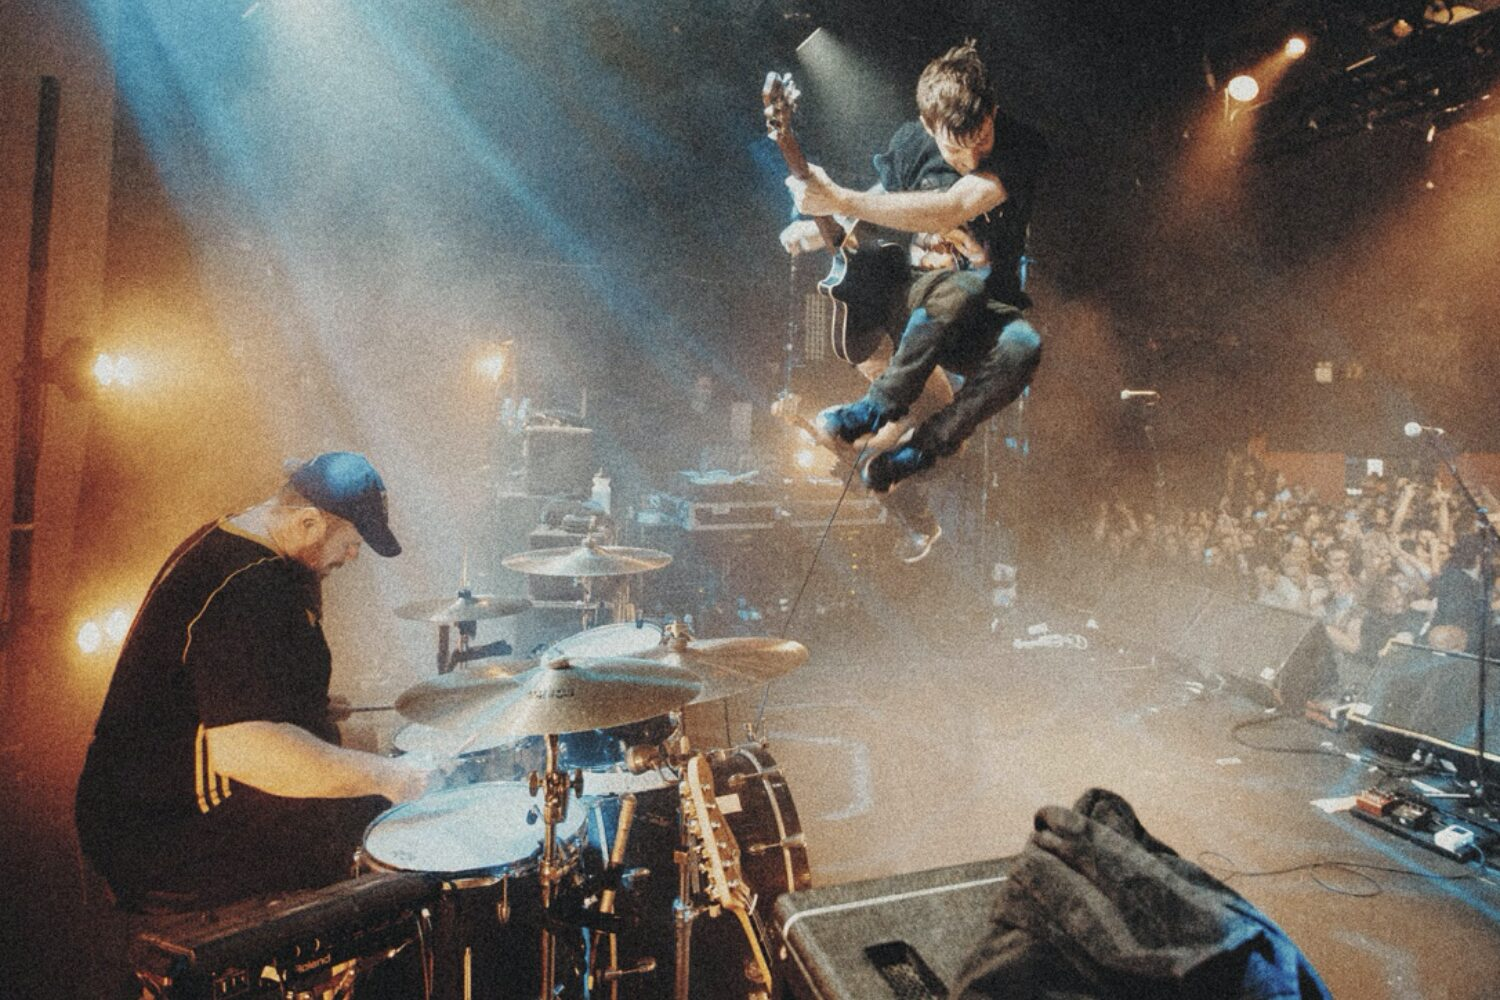 PUP release 'Live At The Electric Ballroom'